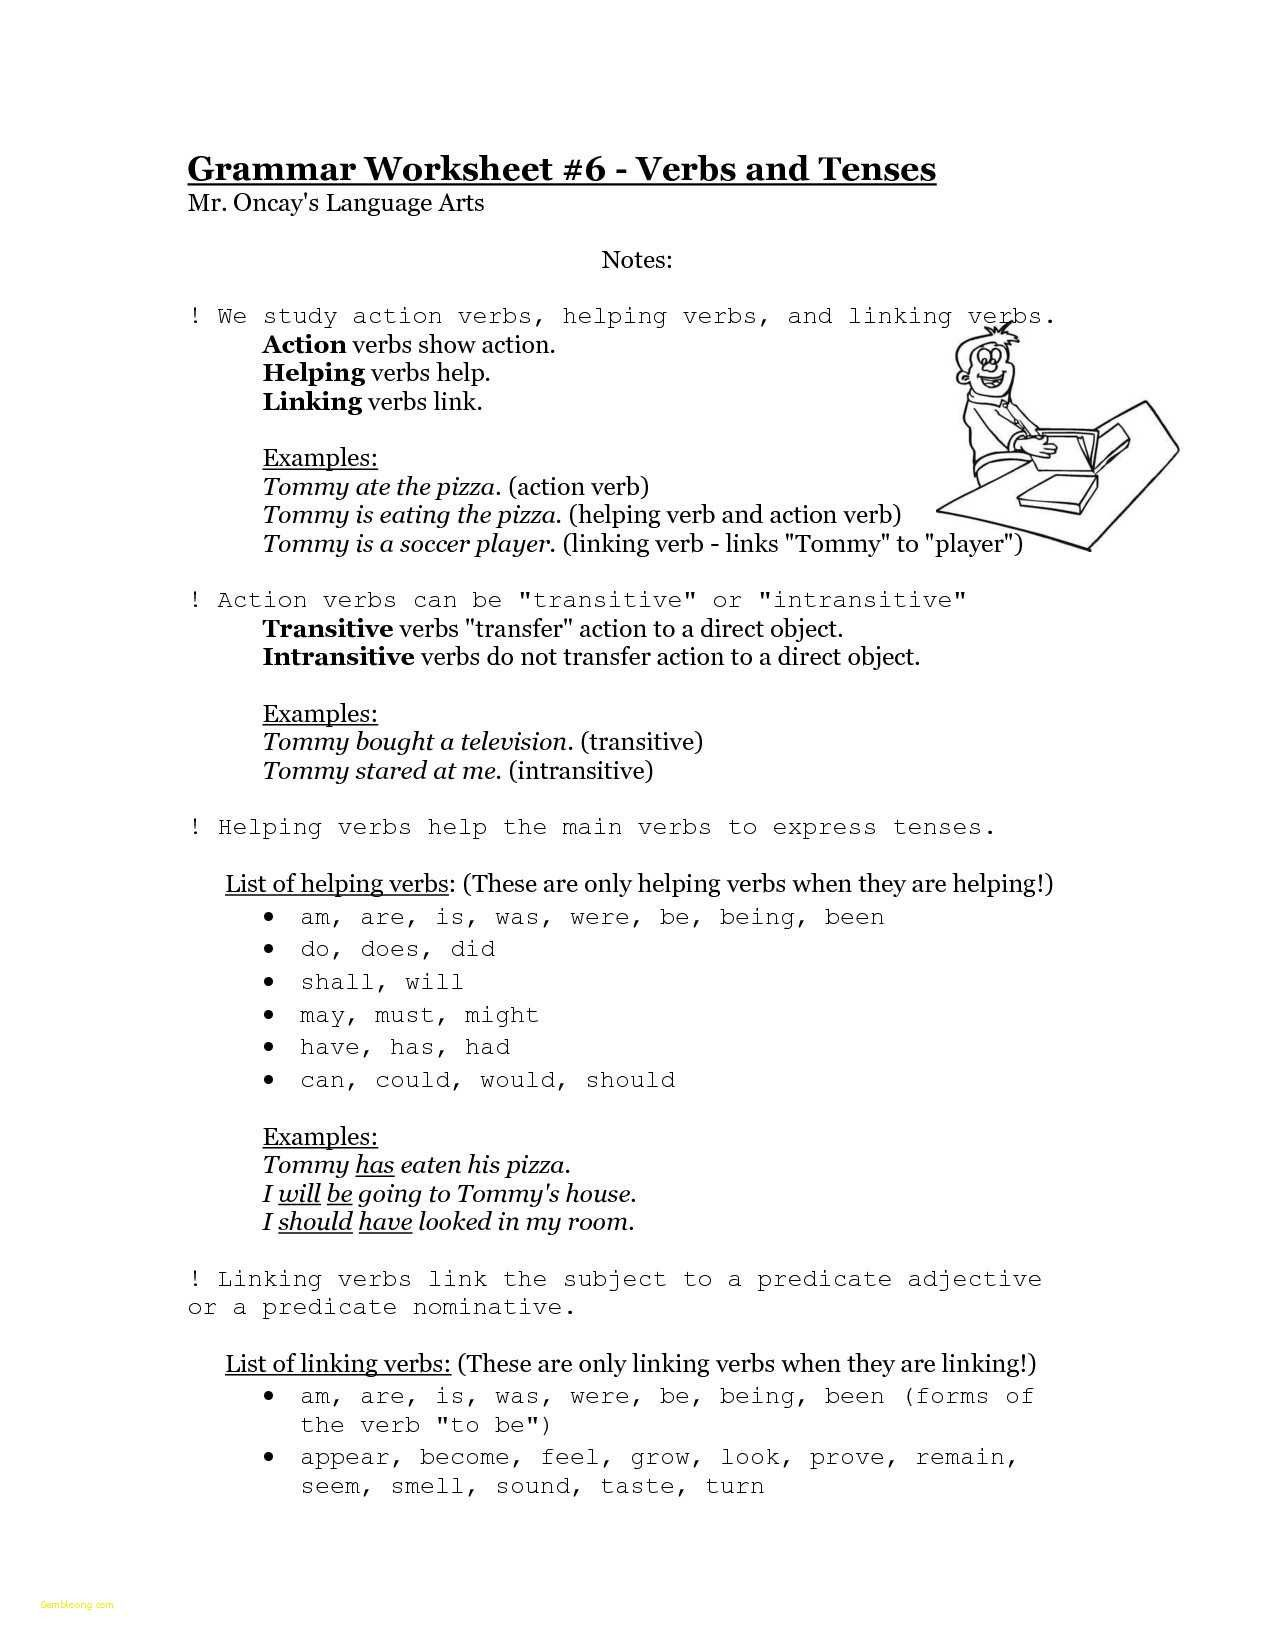 Transcription Worksheet Answers